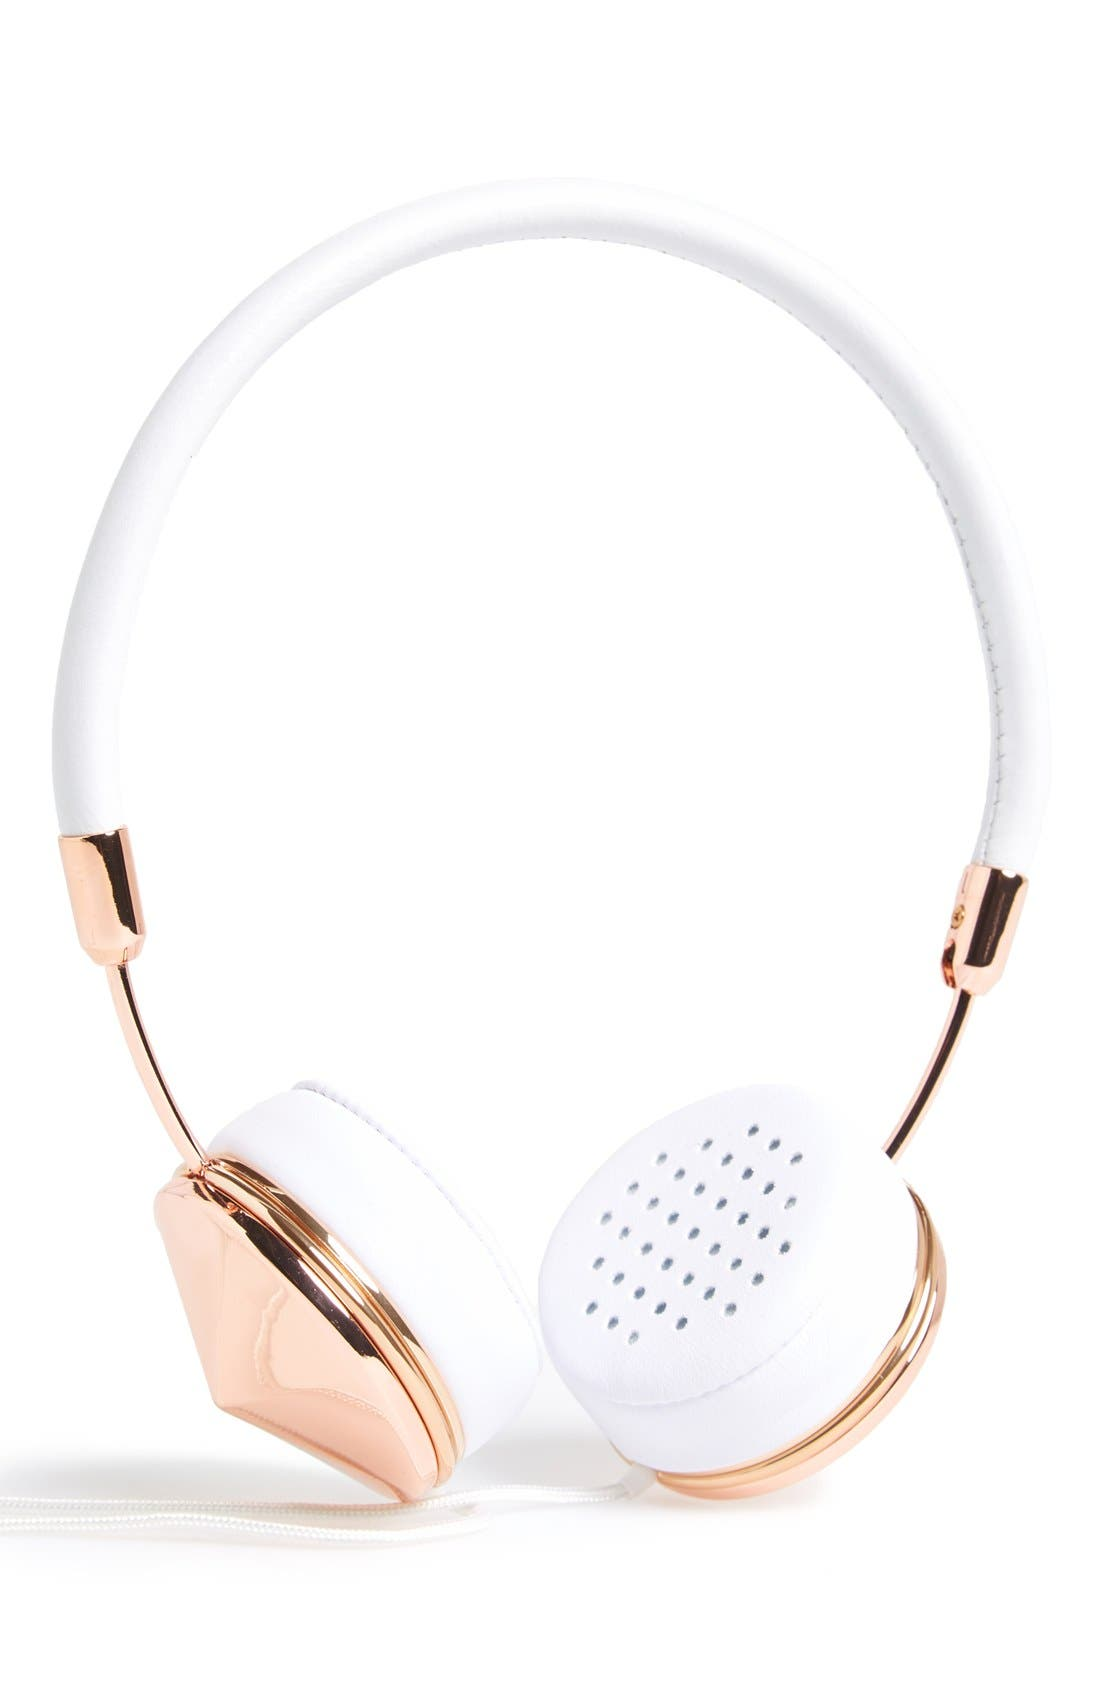 FRENDS,                             with Benefits 'Layla' Headphones,                             Main thumbnail 1, color,                             220